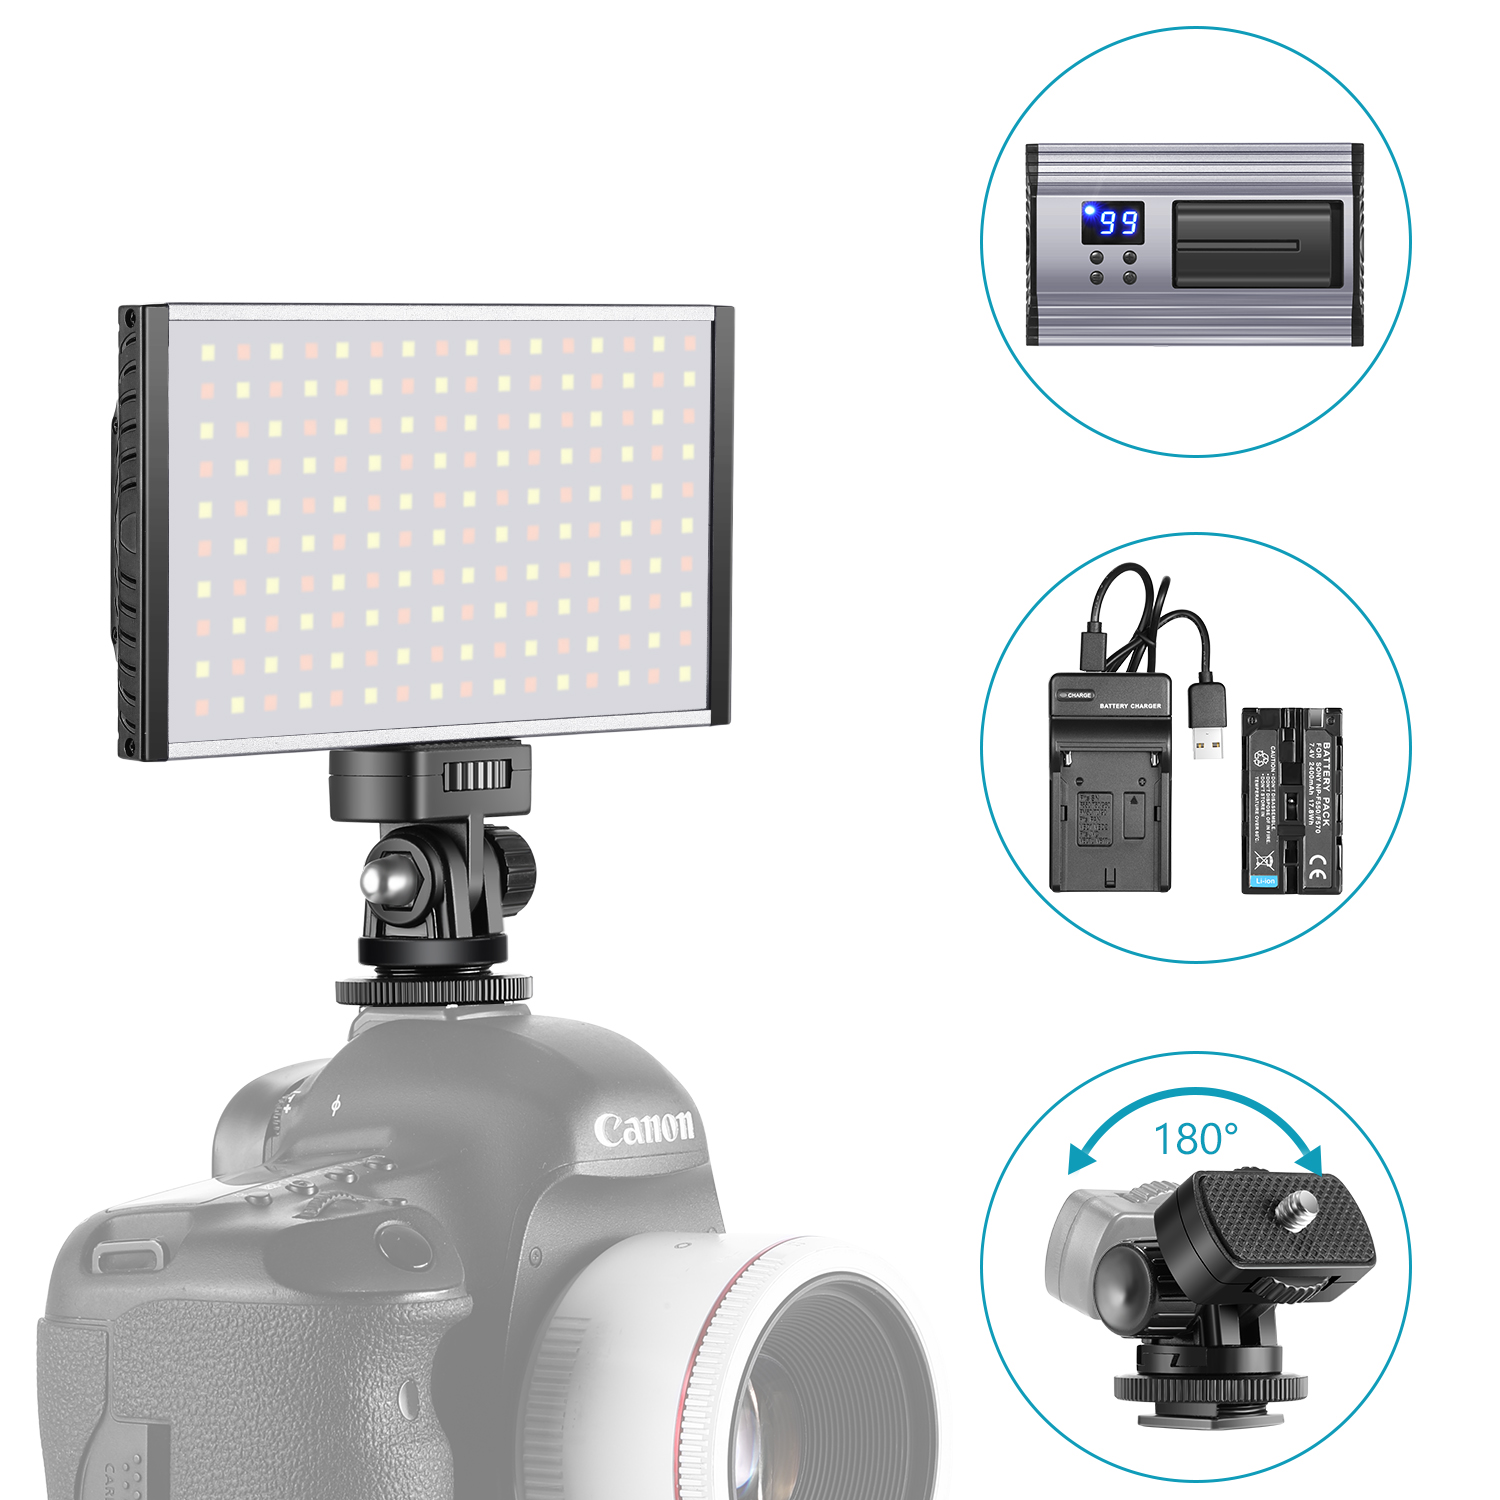 Neewer LED Video Light Panel Camera//Camcorder Video Fill Lighting with Cold Shoe Adapter//Battery//Charger Ultra Thin Anodized Aluminum Housing for All DSLR Cameras 160 SMD LEDs Bi-Color 3200K-5600K